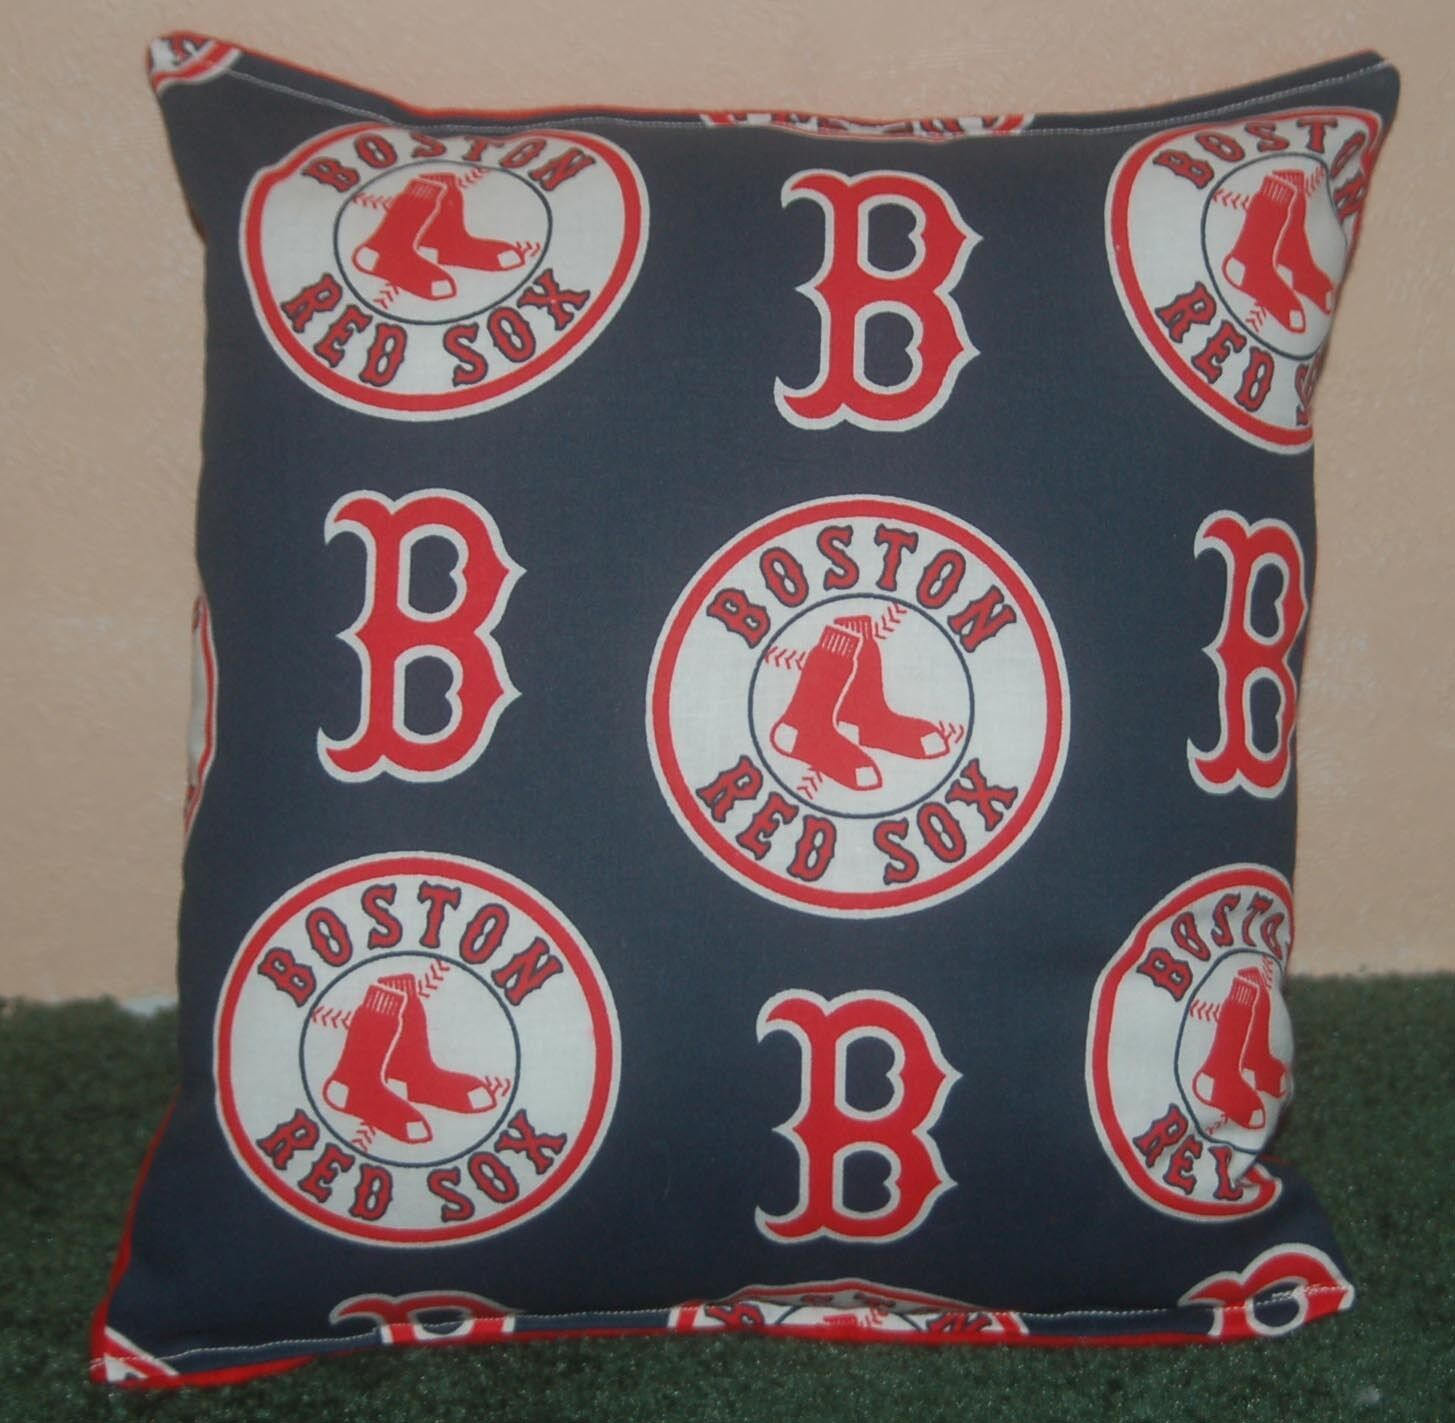 Primary image for Red Sox Pillow Boston Red Sox Pillow MLB Red Soxs Handmade in USA